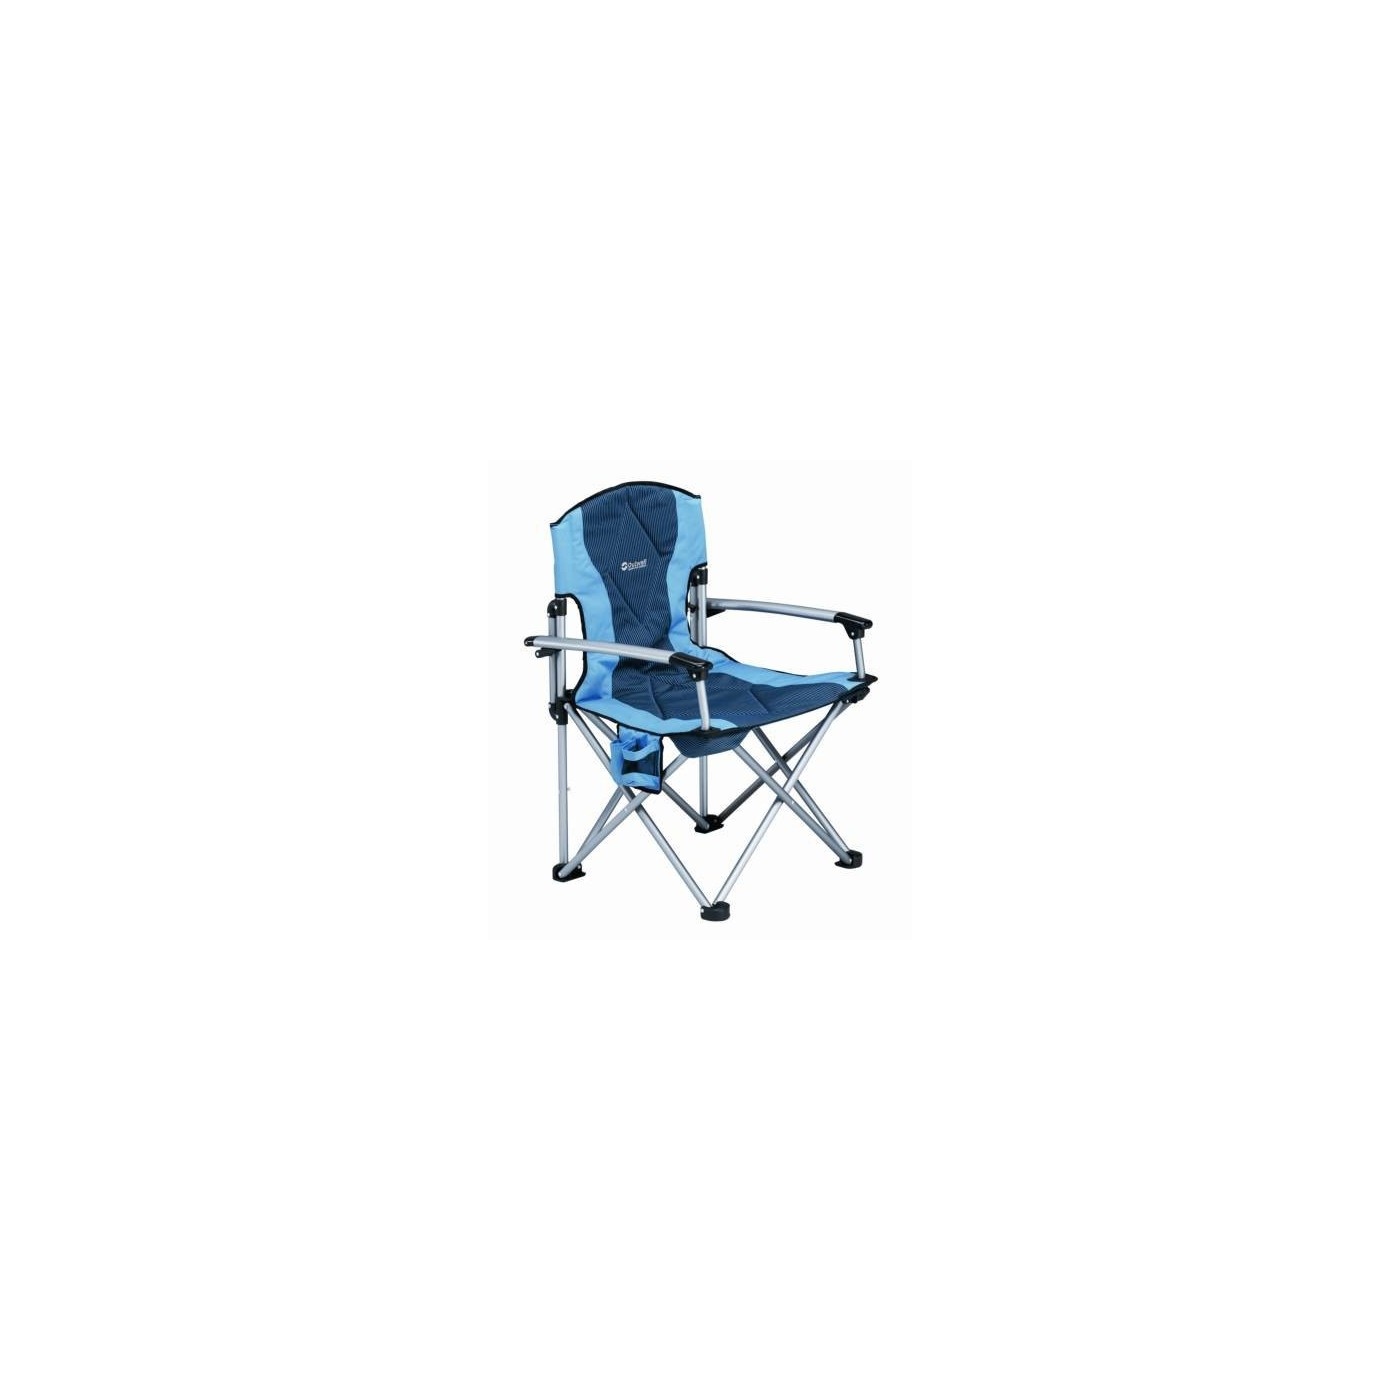 CHAISE PLIABLE CAMPER DELUXE